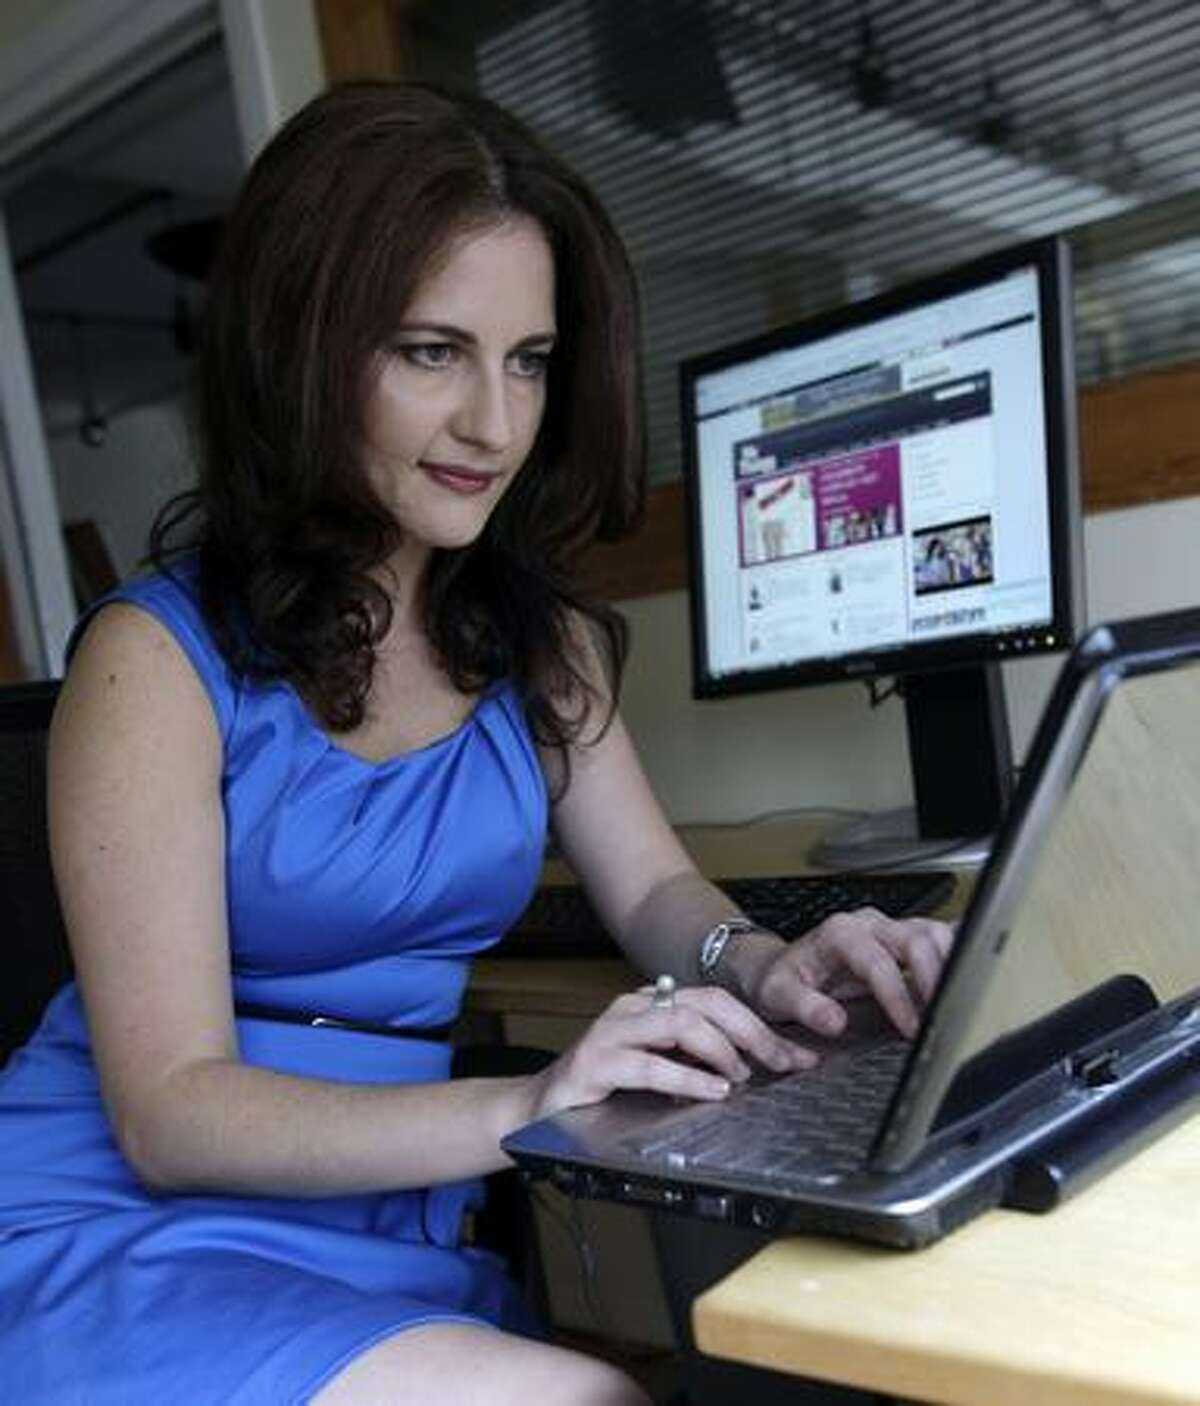 In this photo taken June 12, 2009, Yuli Ziv, president and co-founder of My It Things, is shown in her office in New York. (AP Photo/Richard Drew)